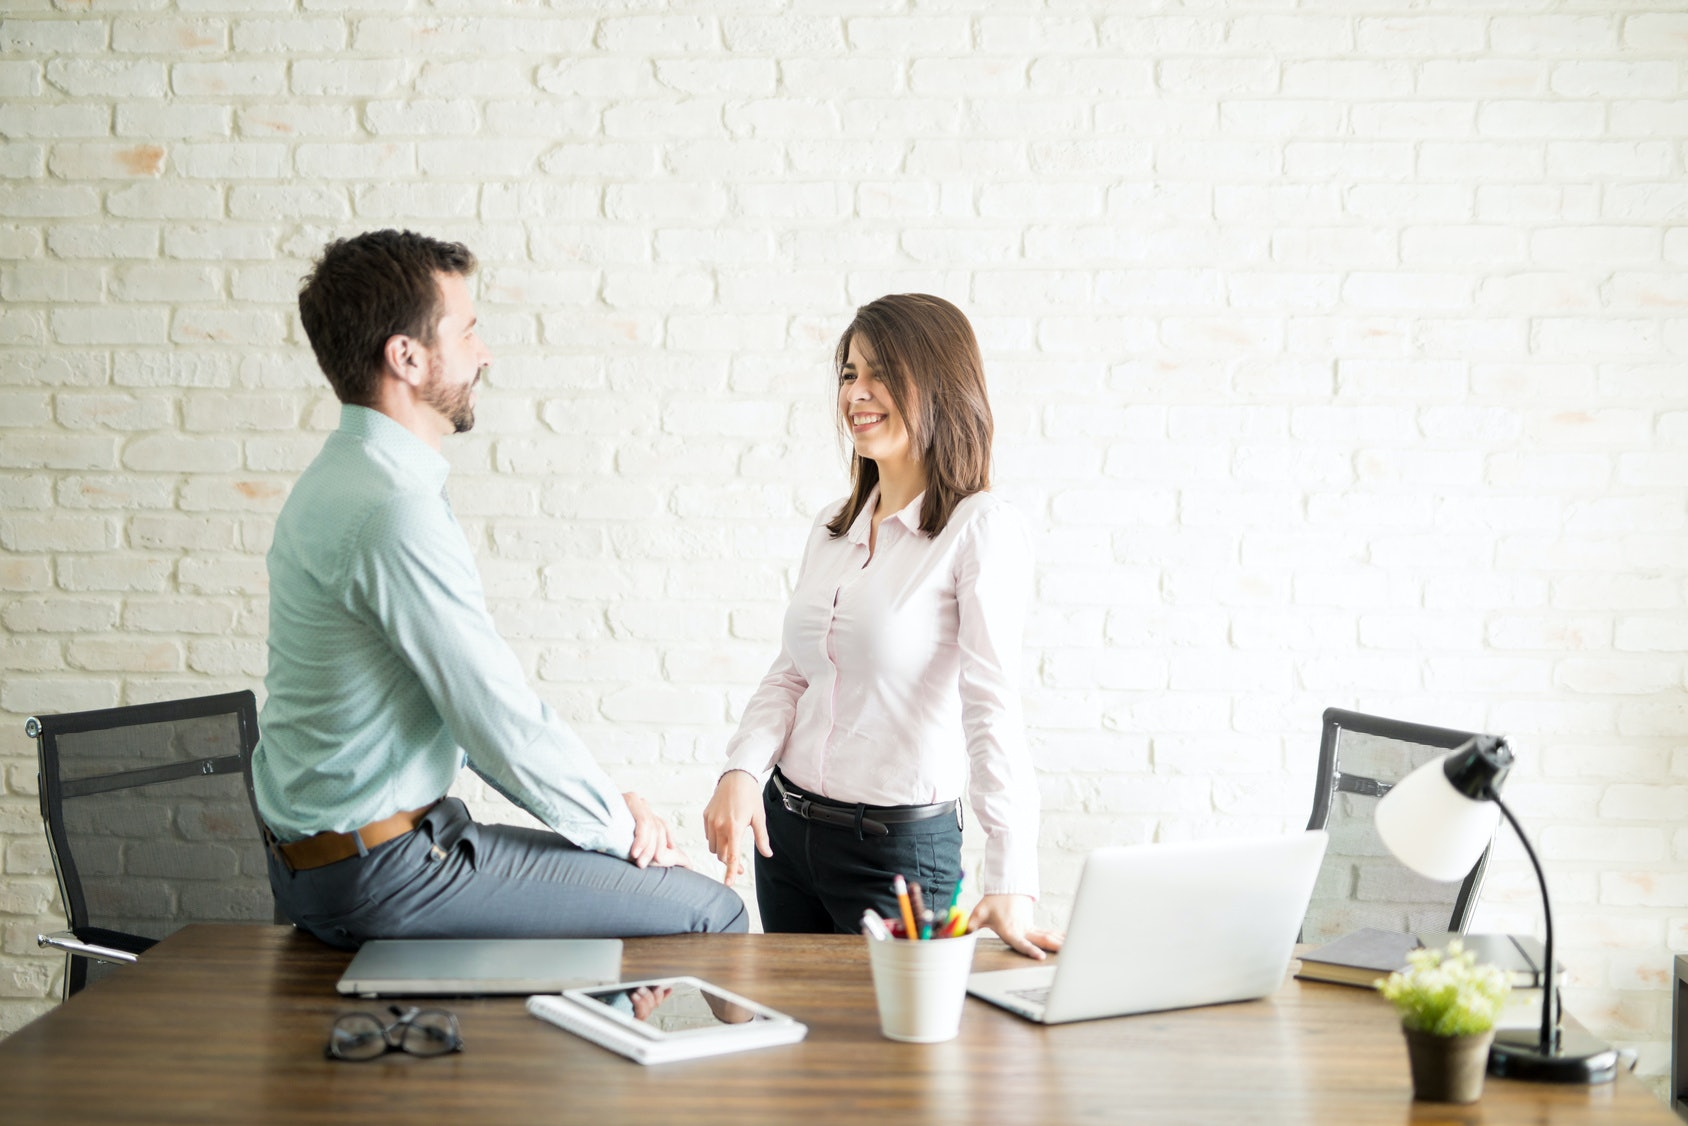 How To Make Workplace Hookup Work